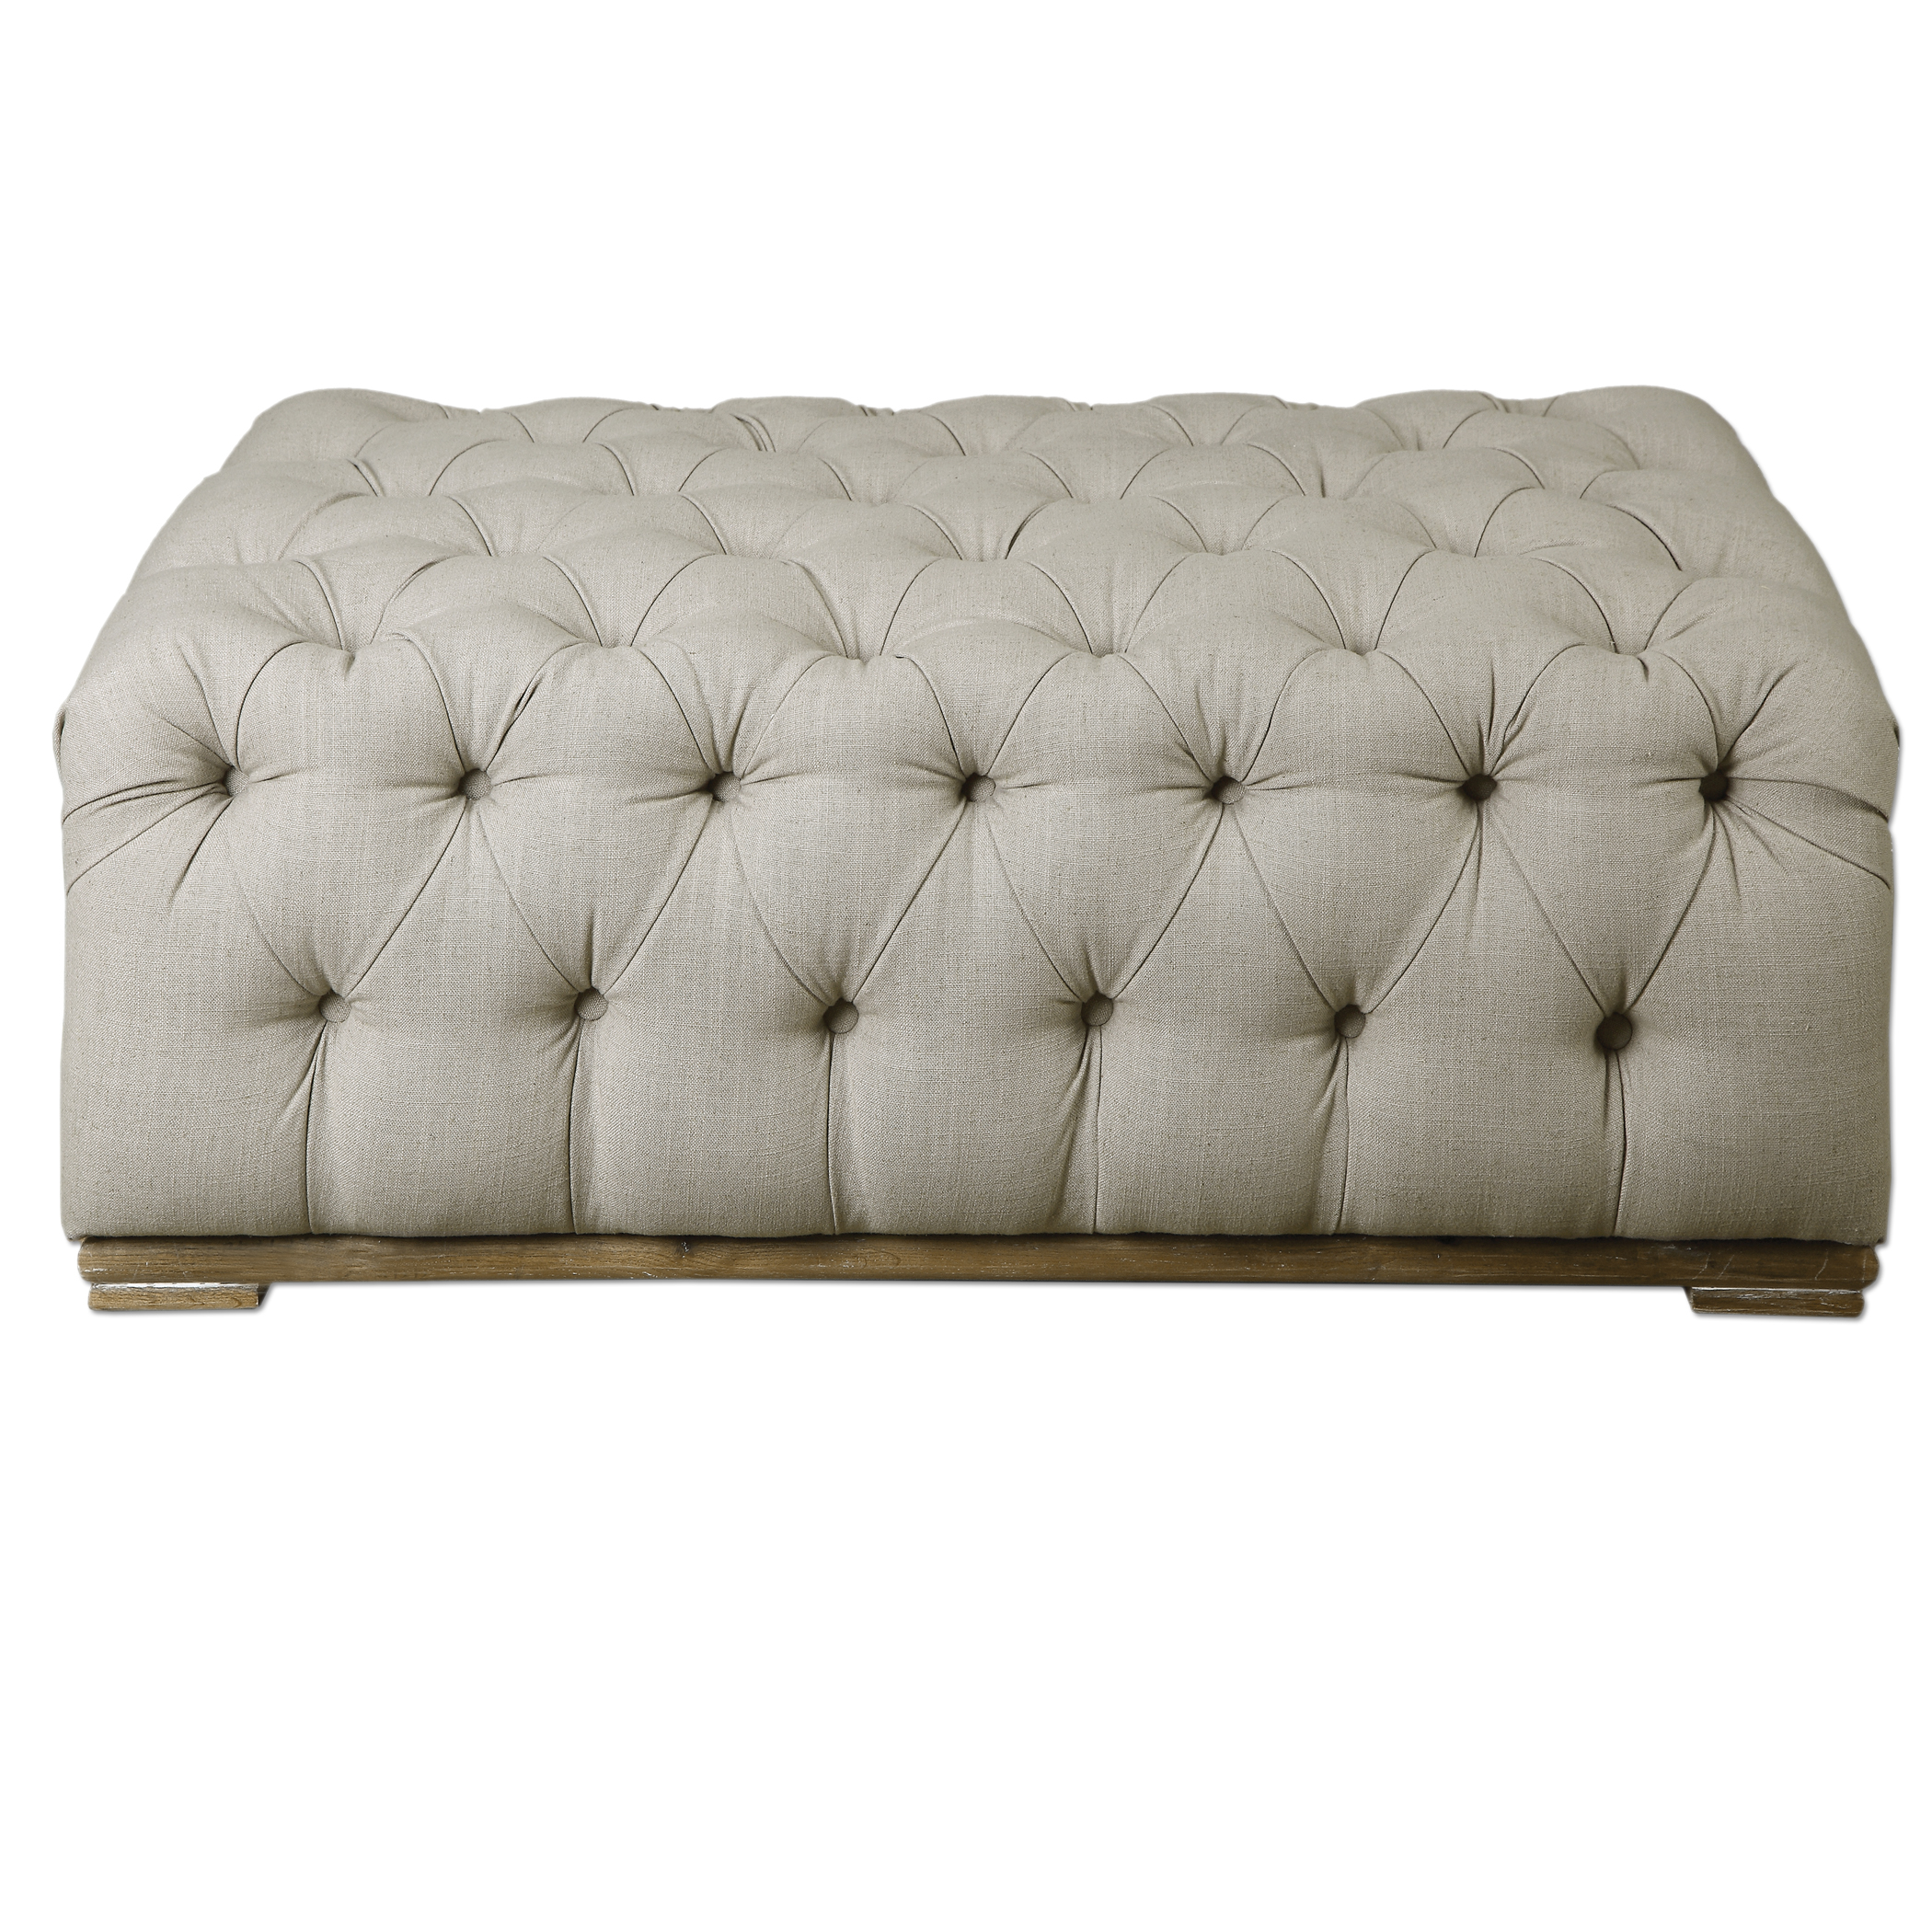 Accent Furniture - Ottomans Kaniel Tufted Antique White Ottoman by Uttermost at Factory Direct Furniture